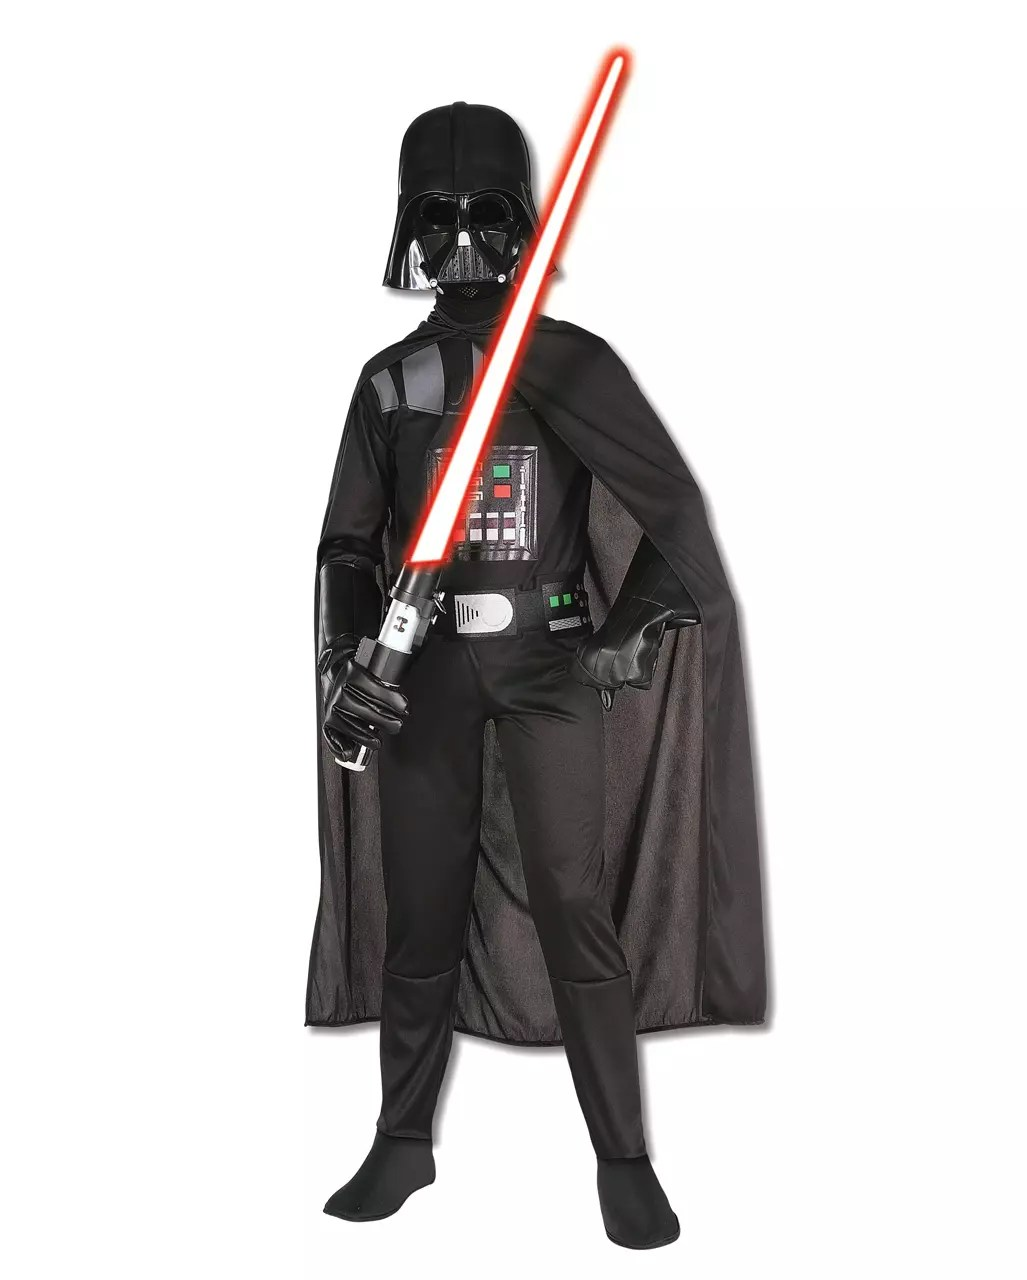 Karneval Kostüm Star Wars Darth Vader Kinderkostüm Star Wars Kostüme Für Kinder